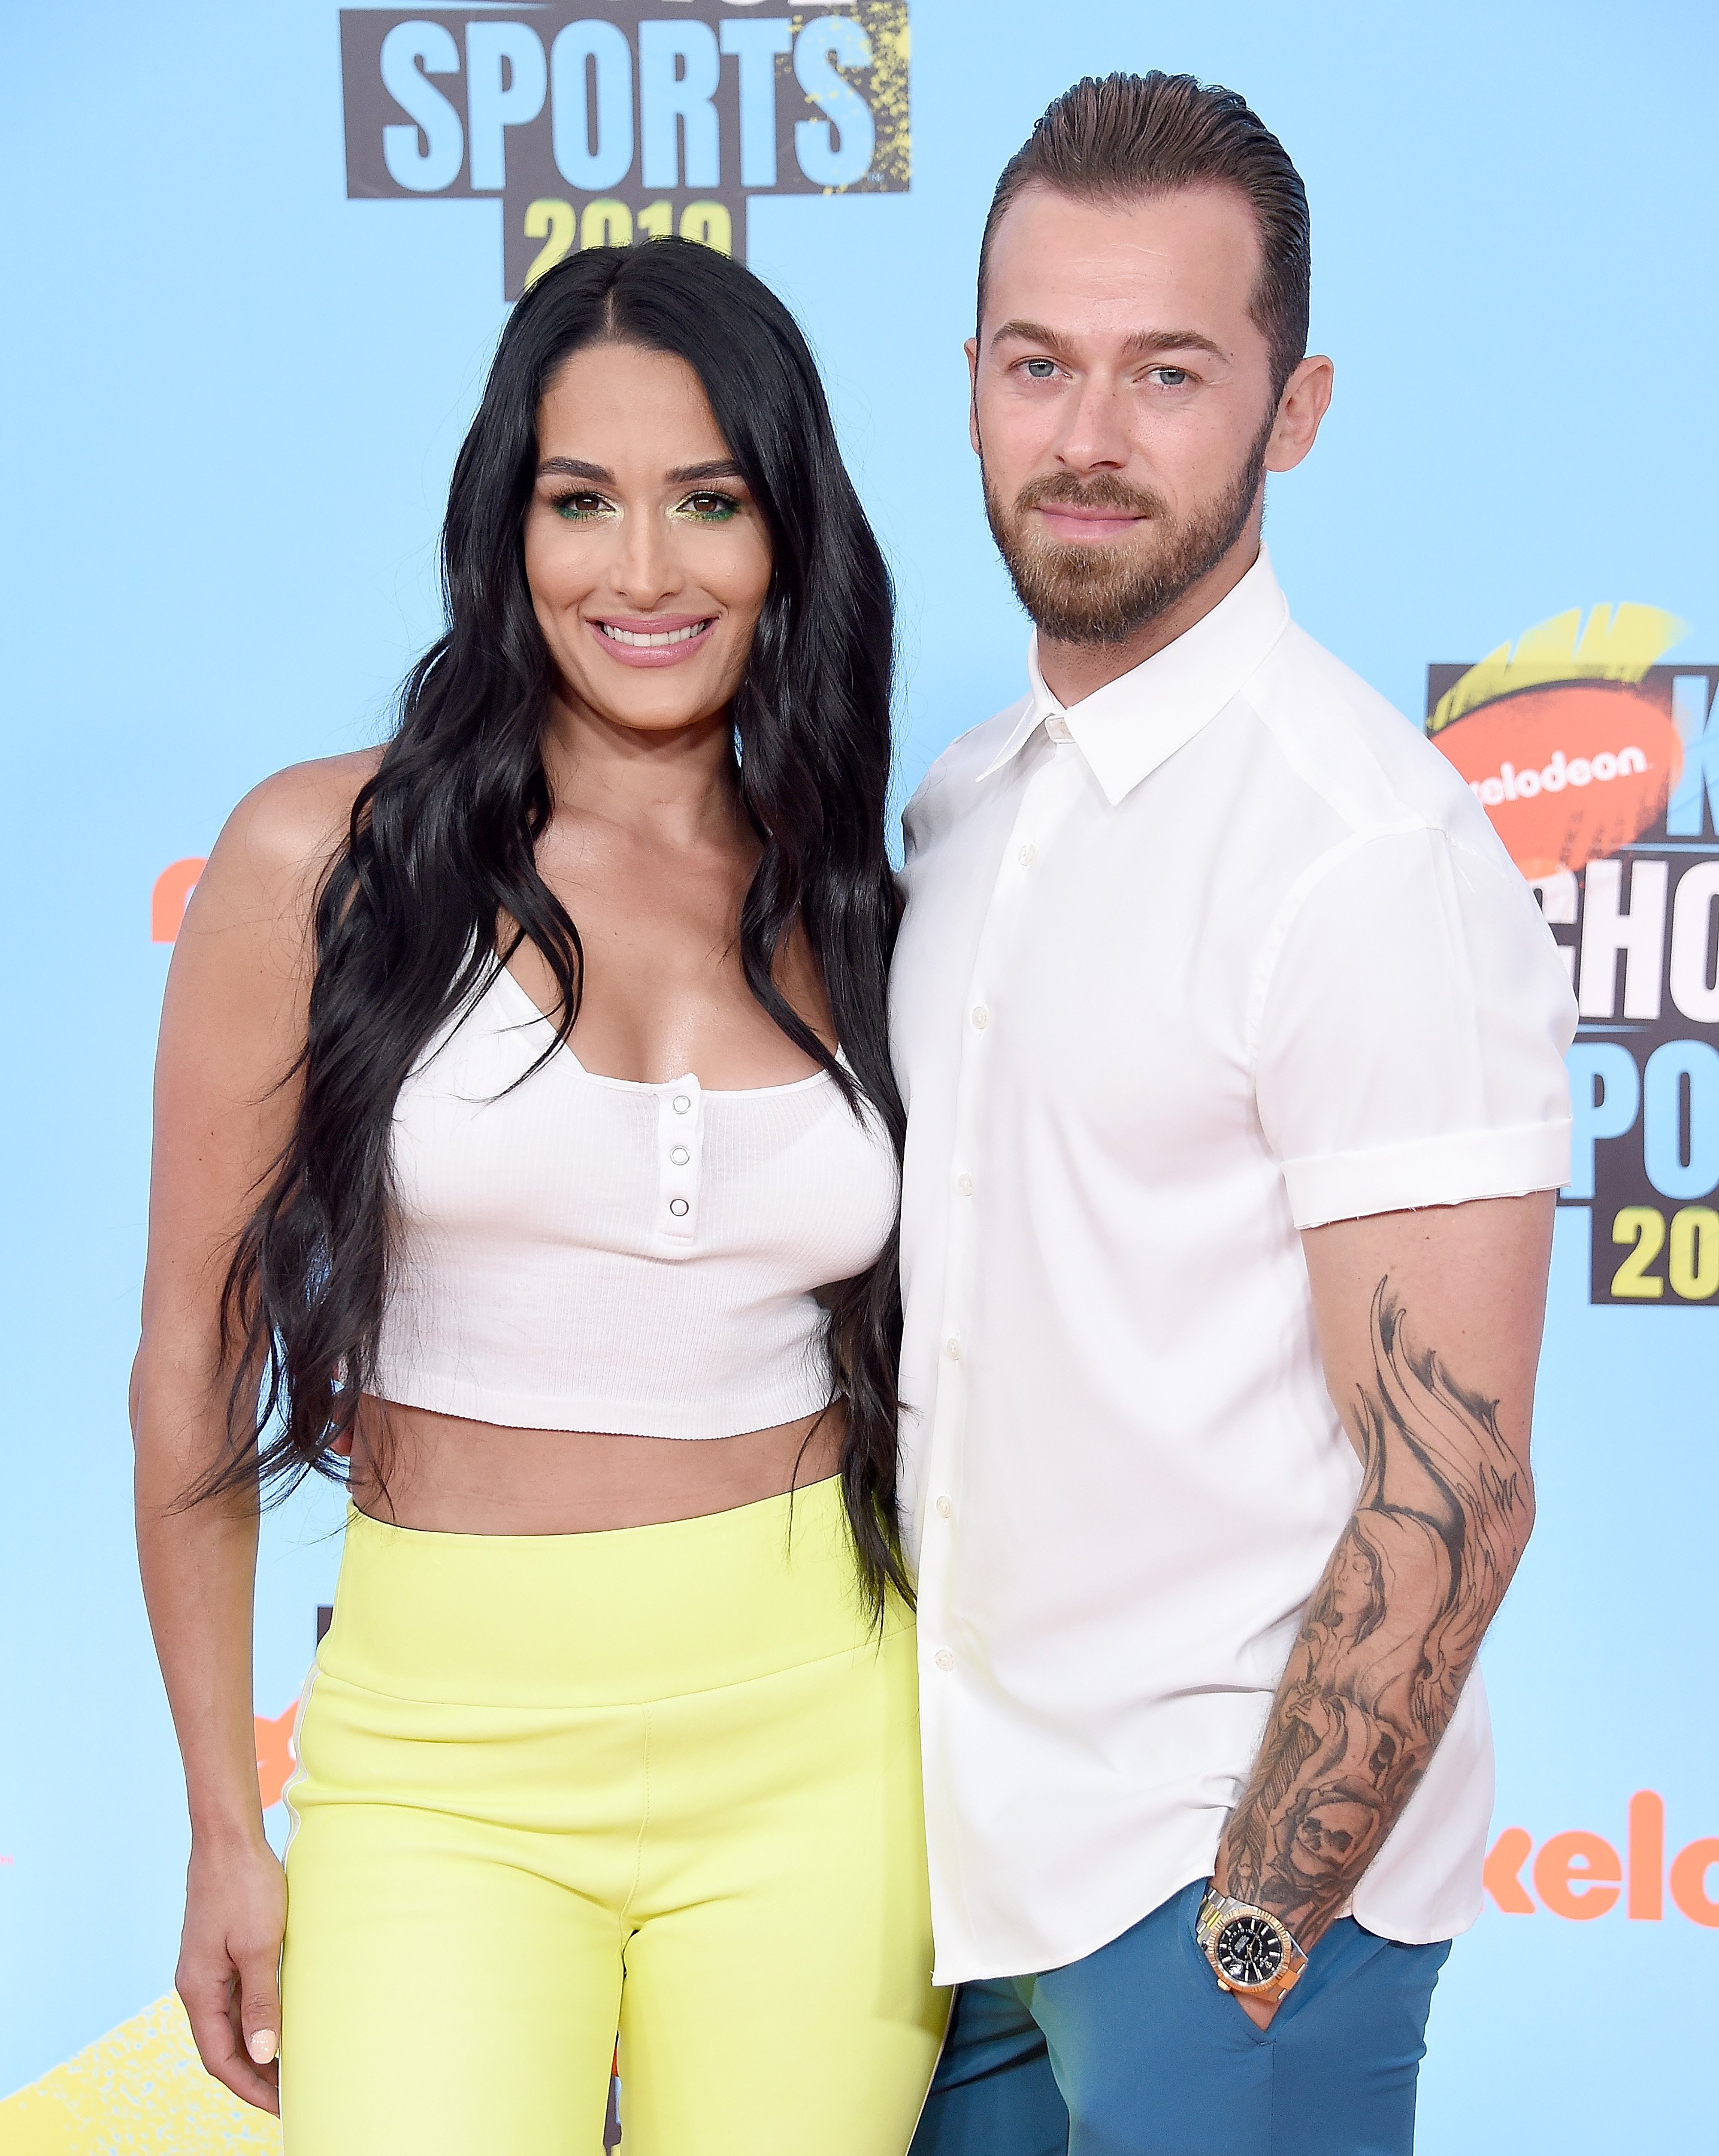 Nikki Bella and Artem Chigvintsev attend Nickelodeon Kids' Choice Sports in Santa Monica, California on July 11, 2019 | Photo: Getty Images